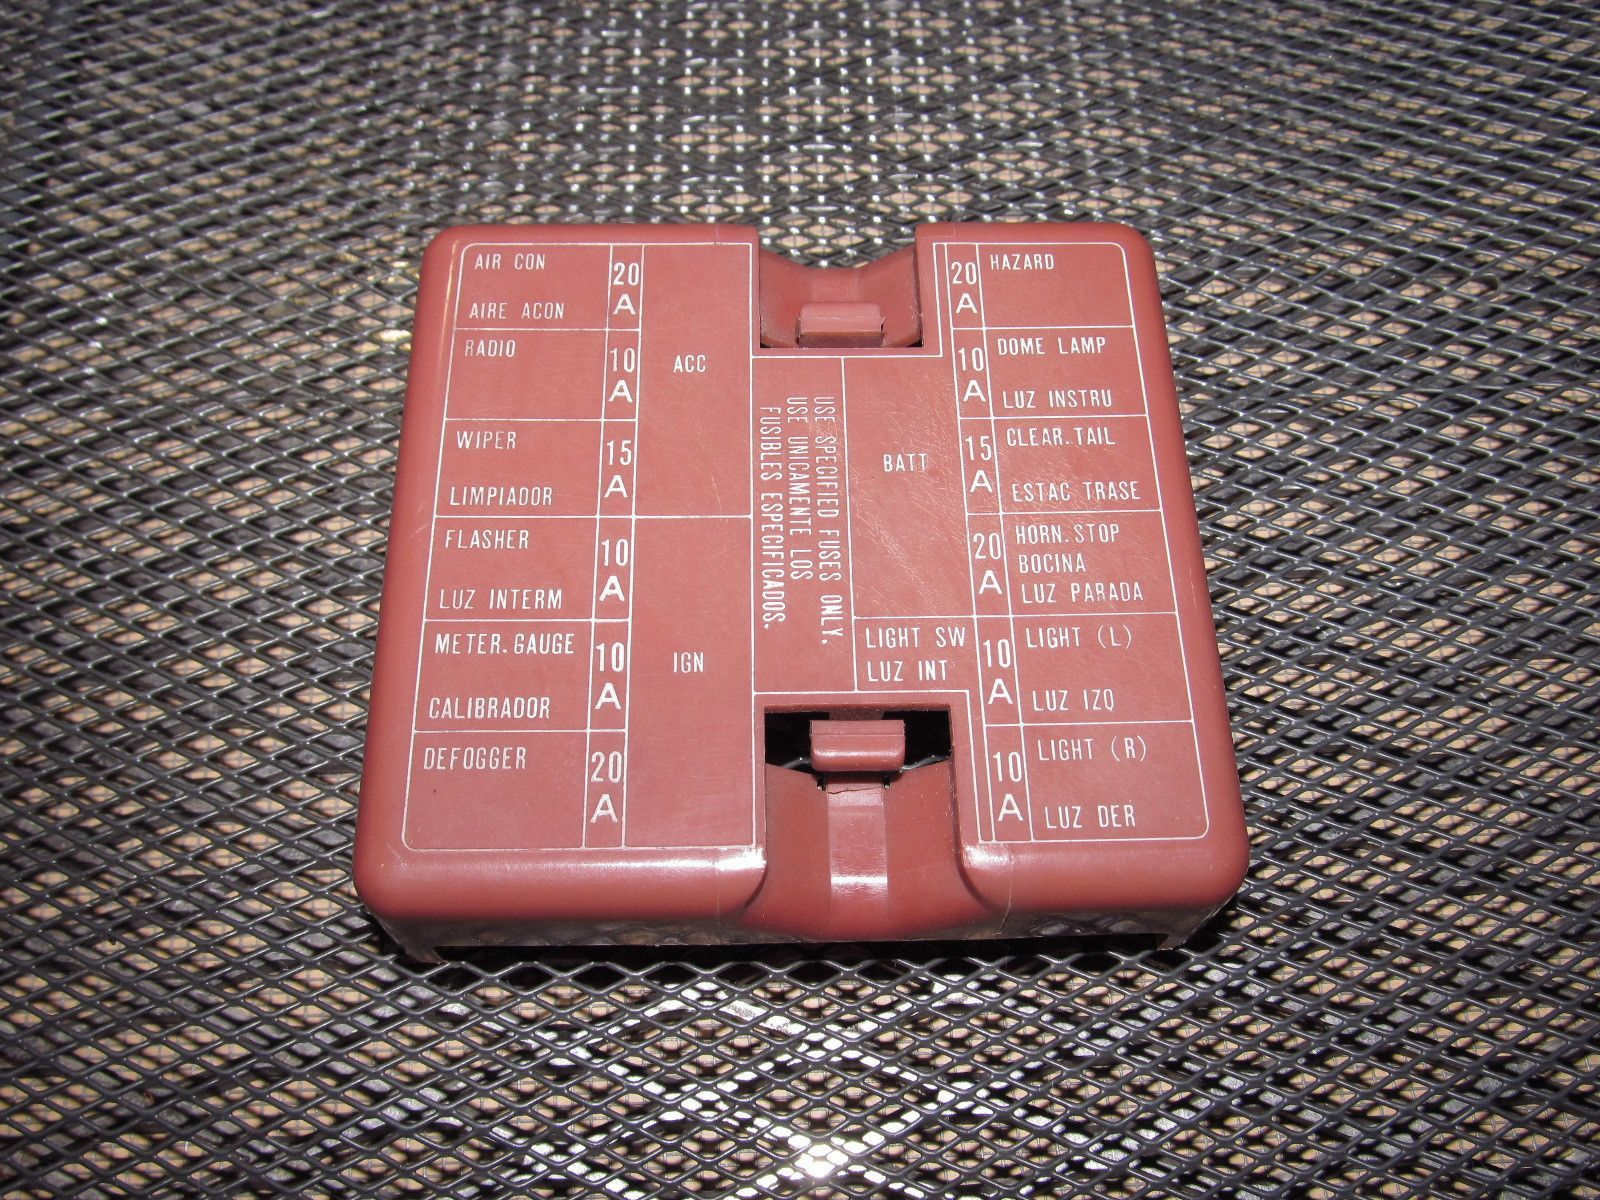 79 80 datsun 280zx oem interior fuse box cover products 79 80 datsun 280zx oem interior fuse box cover